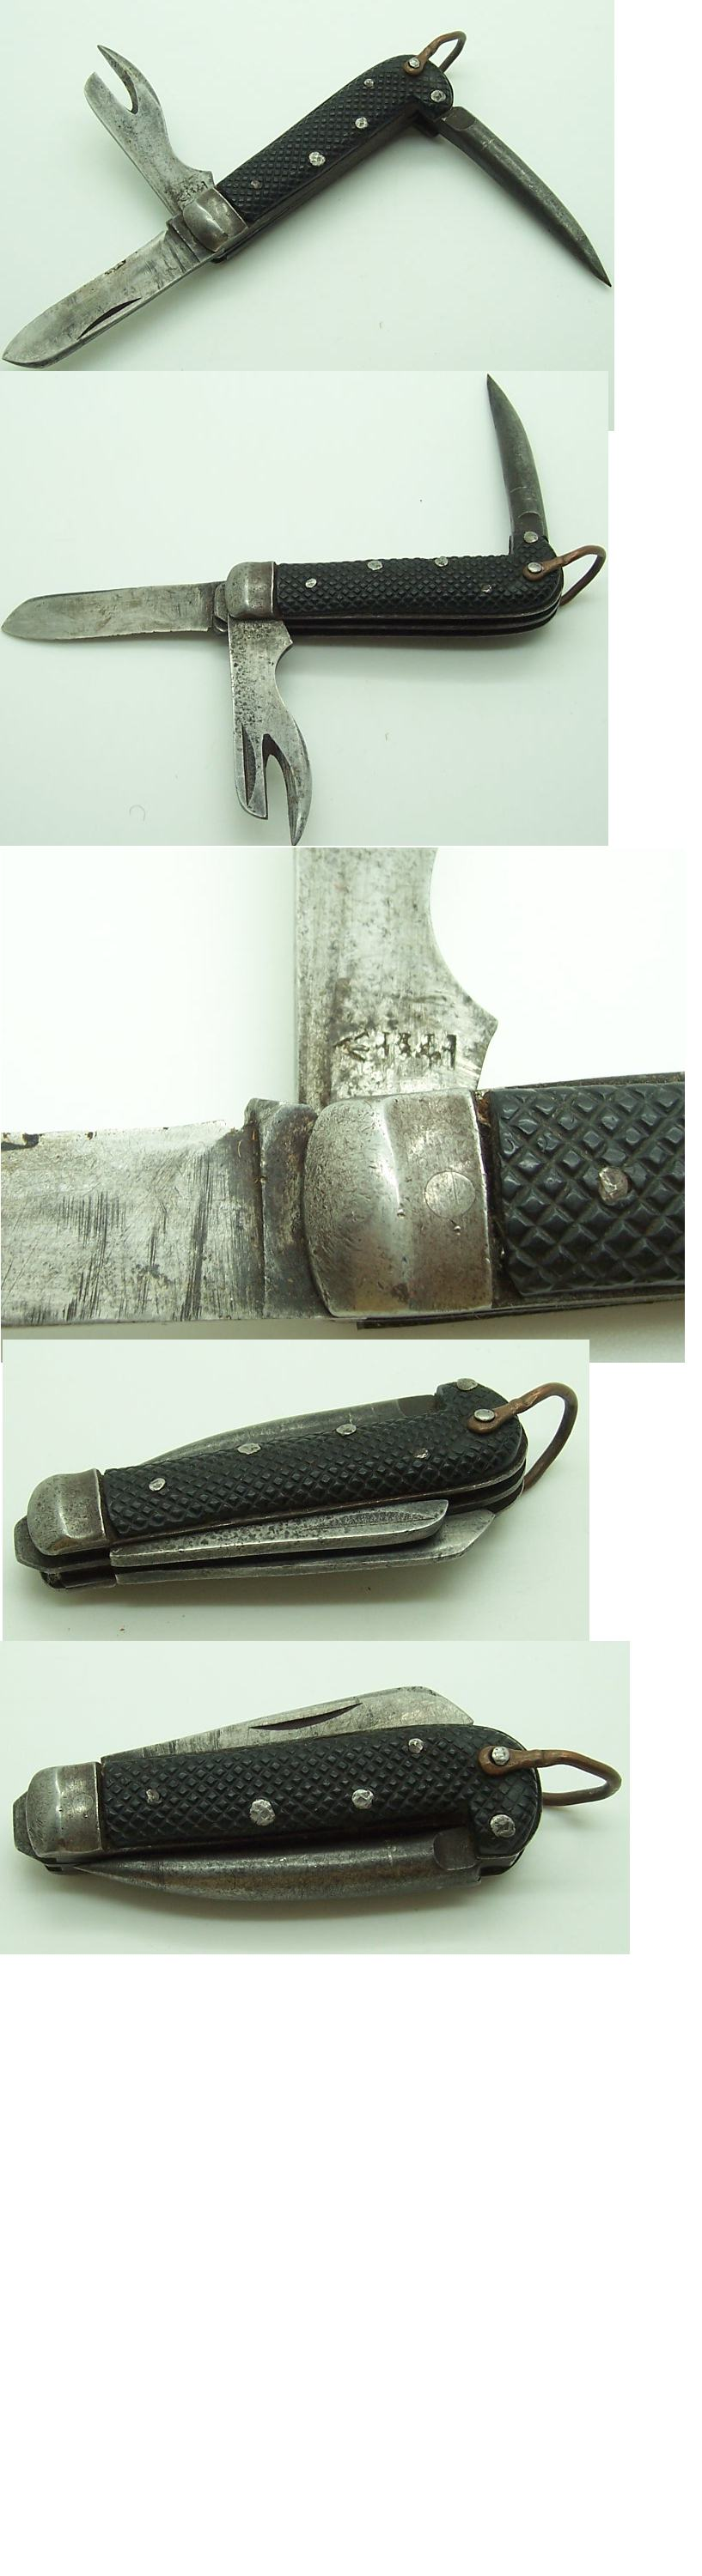 Canadian/British Paratrooper Knife